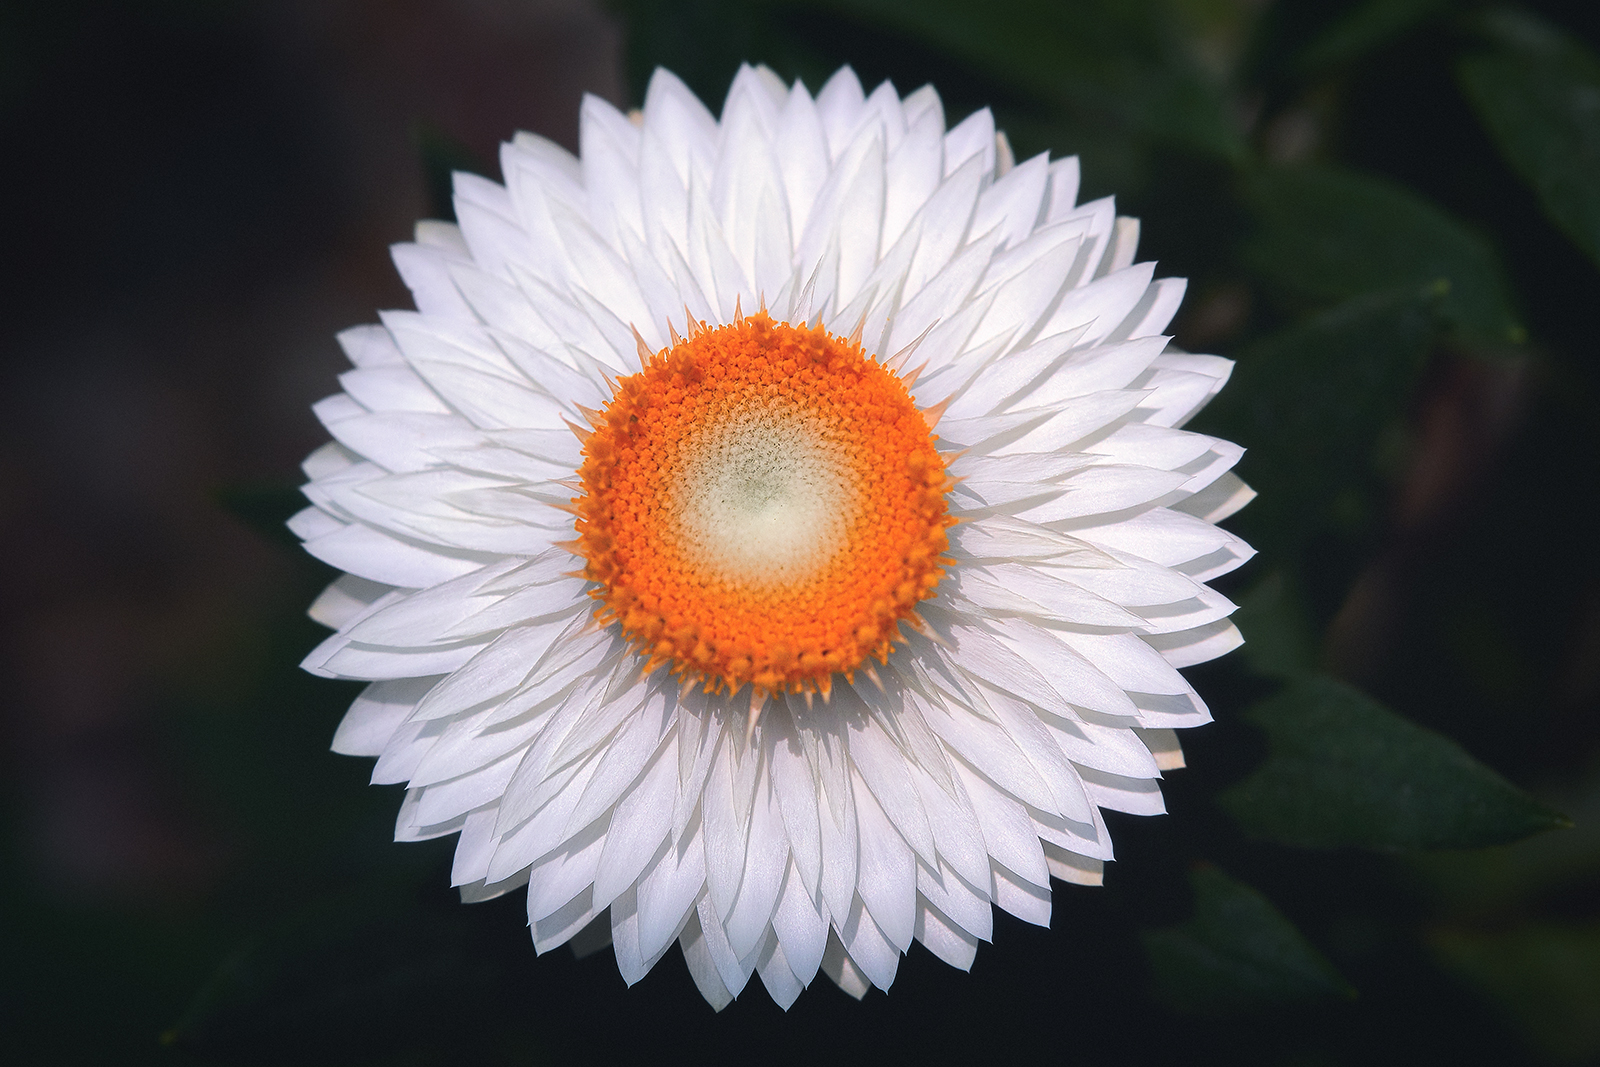 White Flower with many Petals